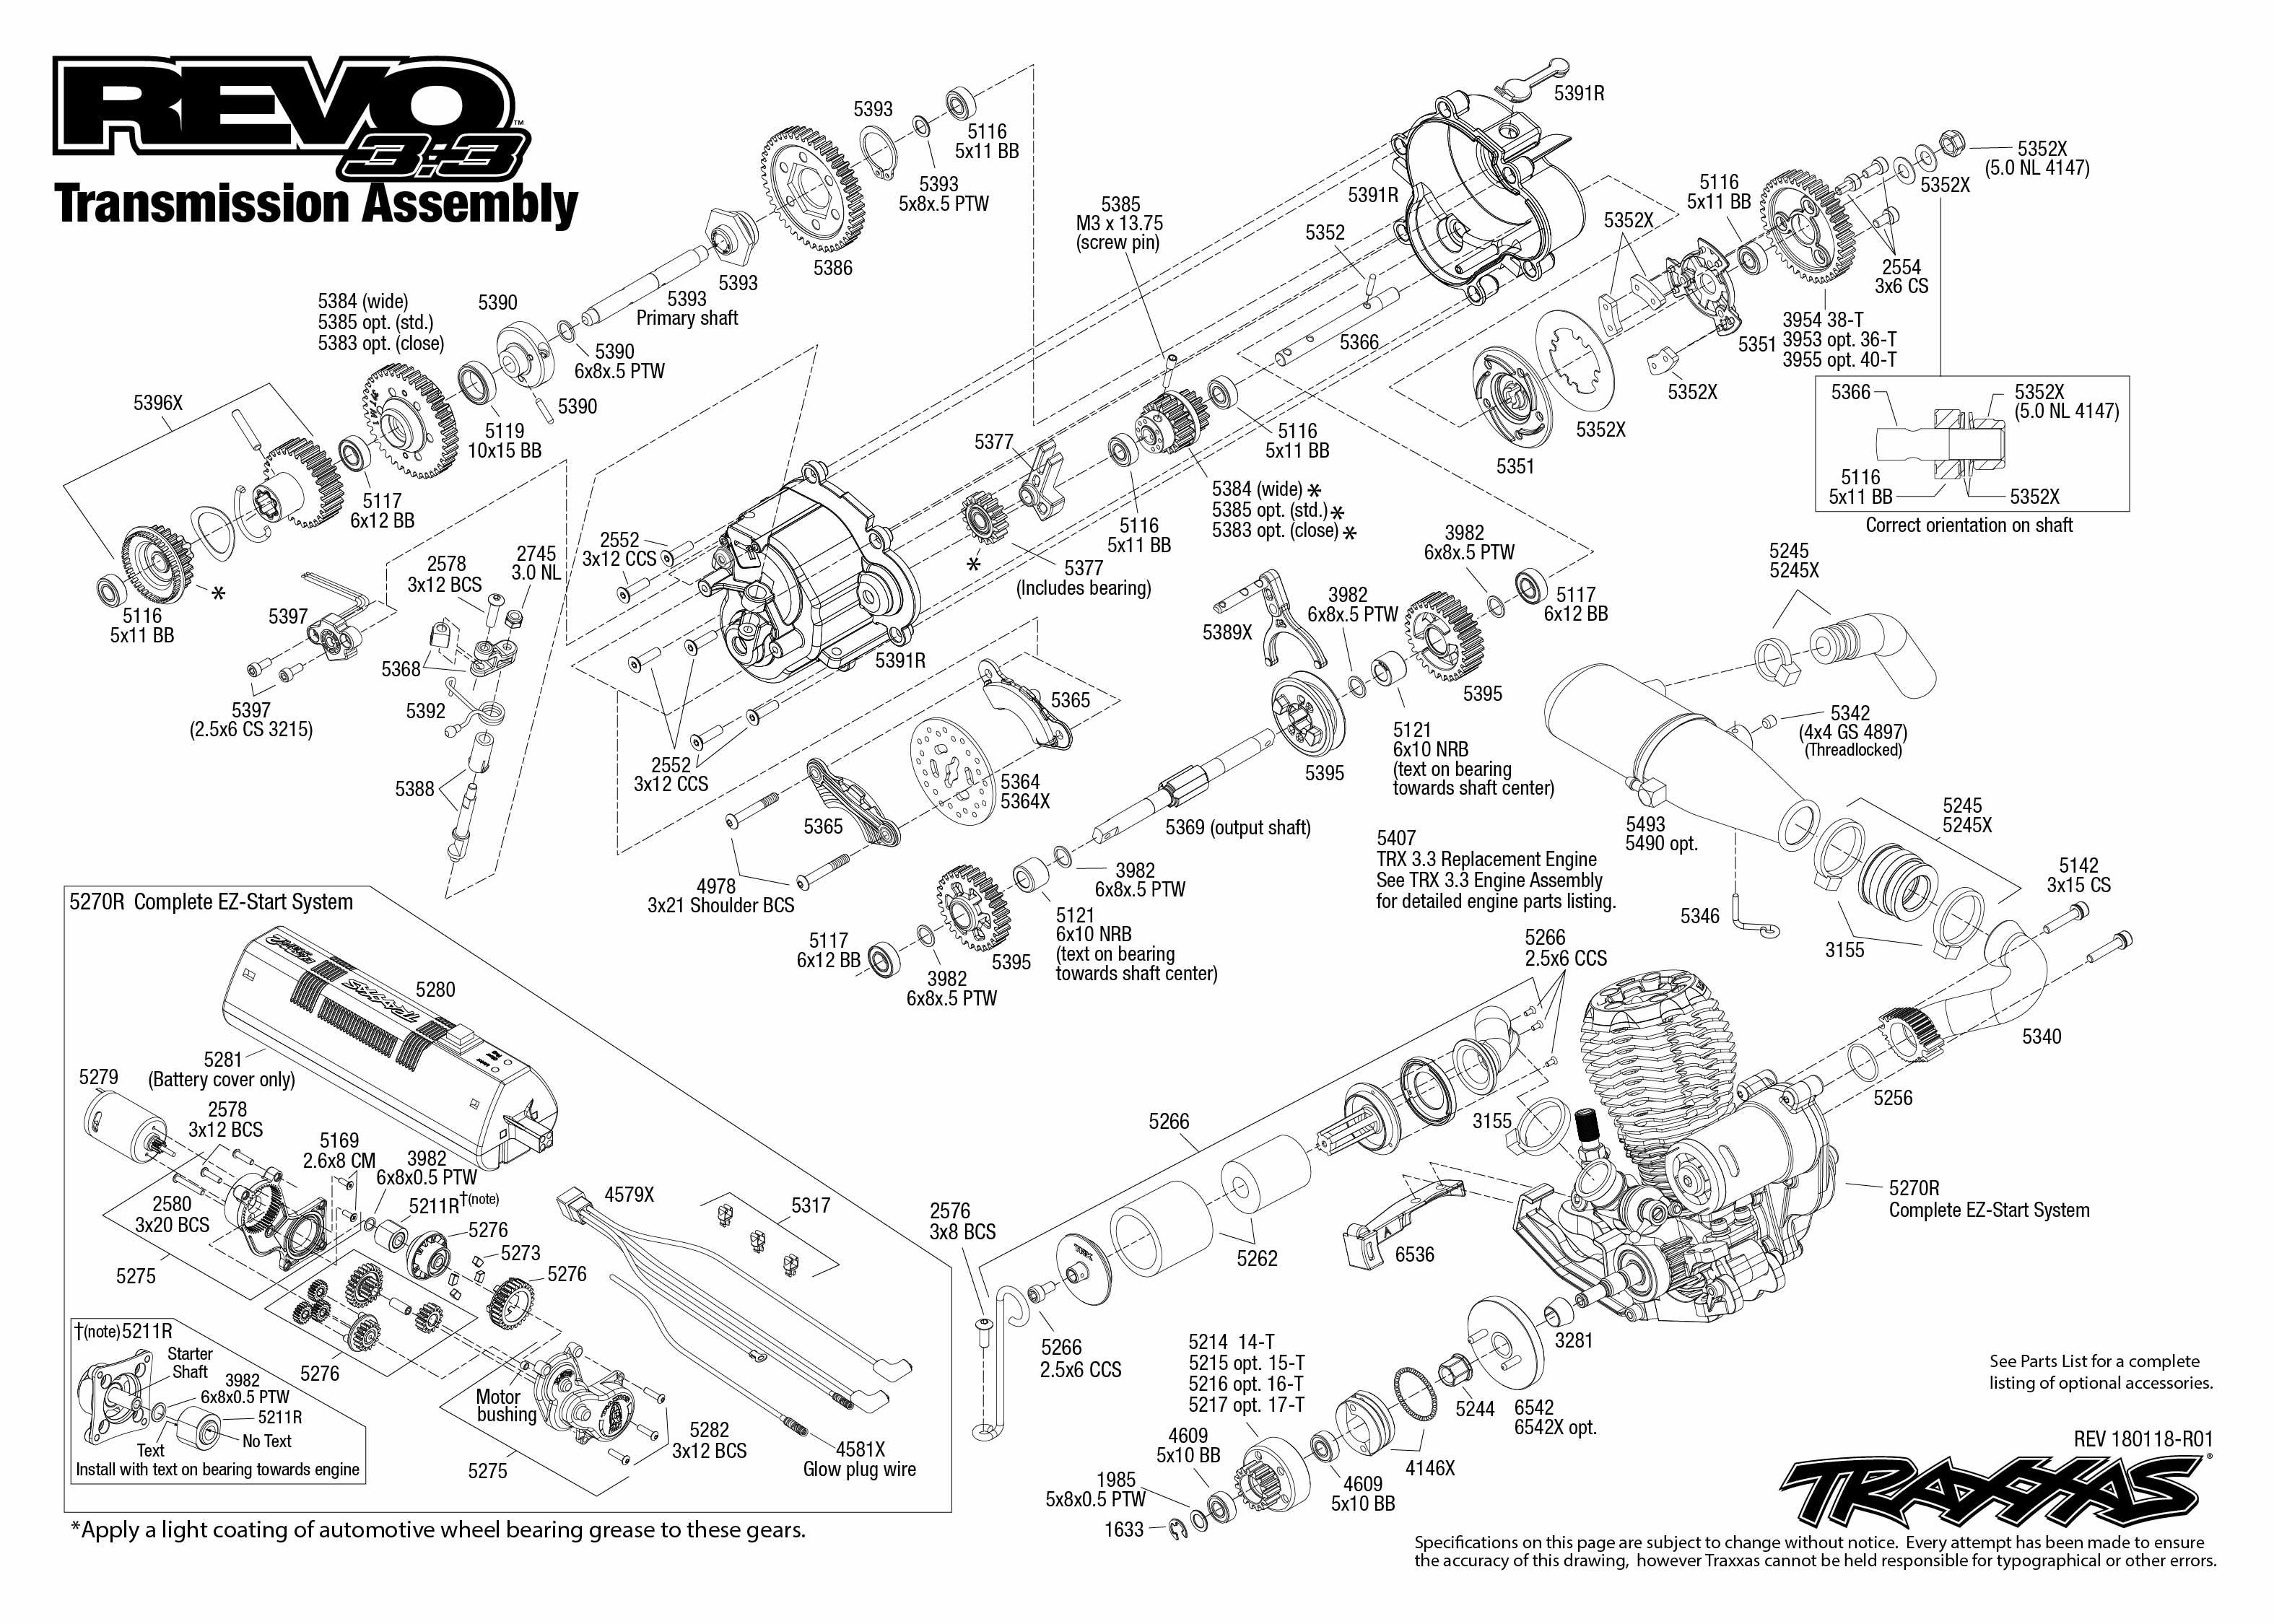 Revo 3.3 (53097-3) Transmission Assembly Exploded View